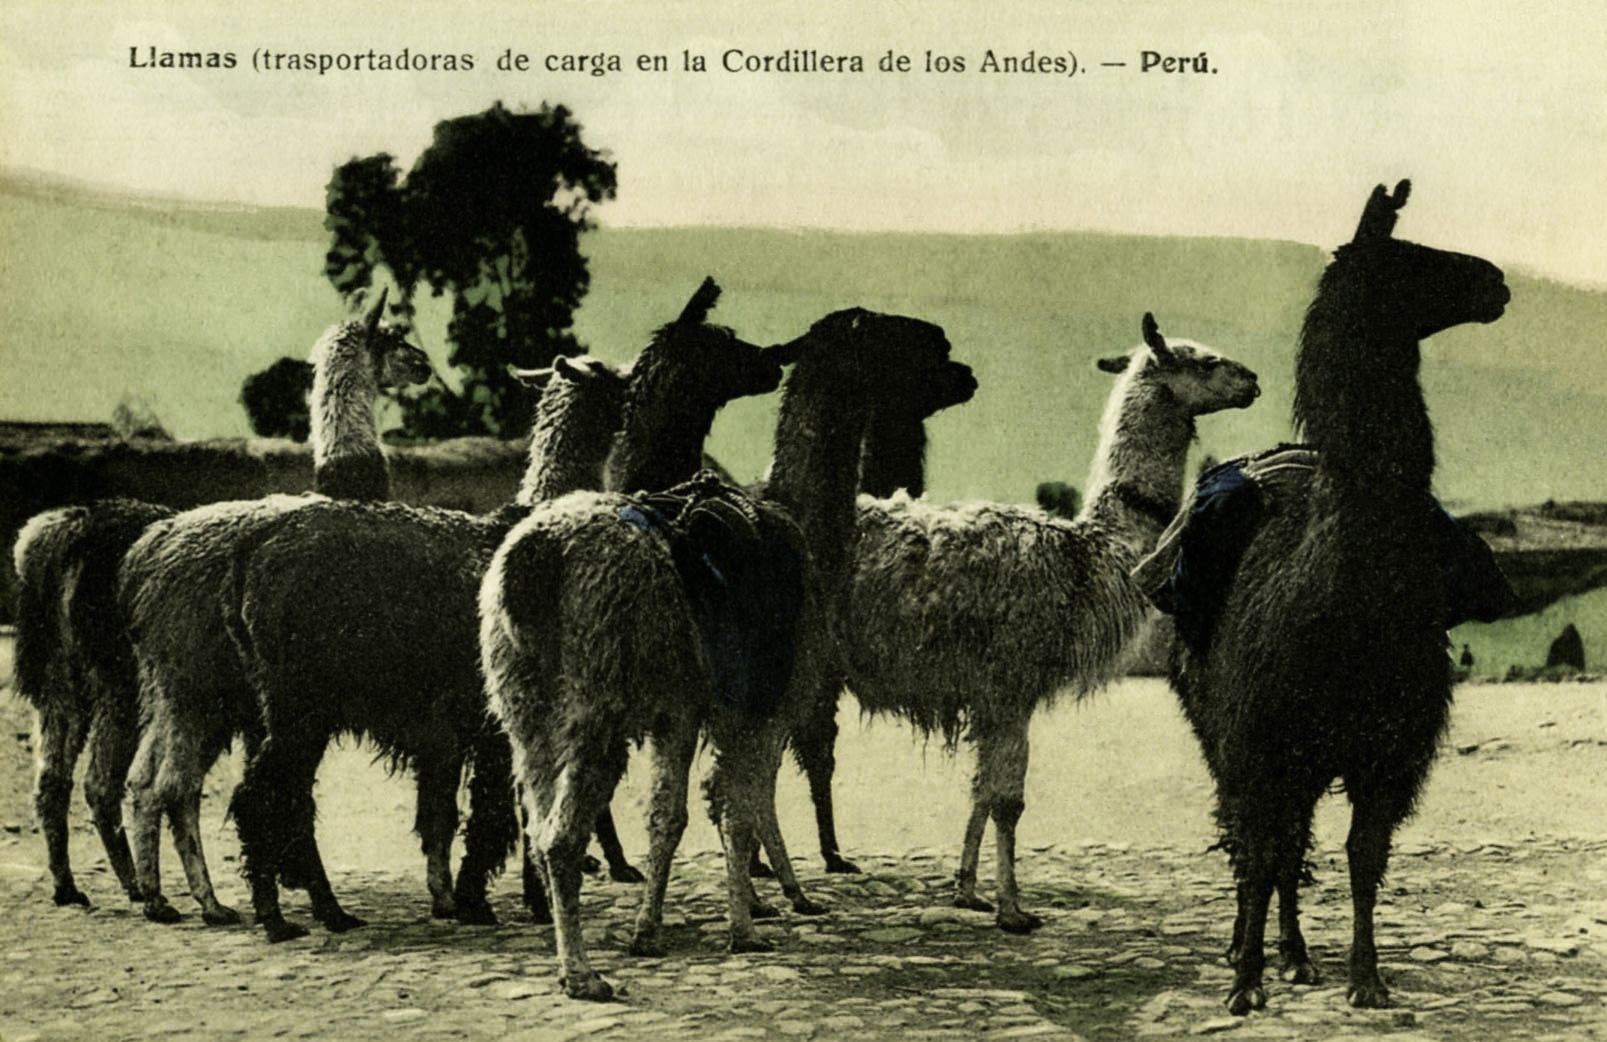 South American Postcard Collection